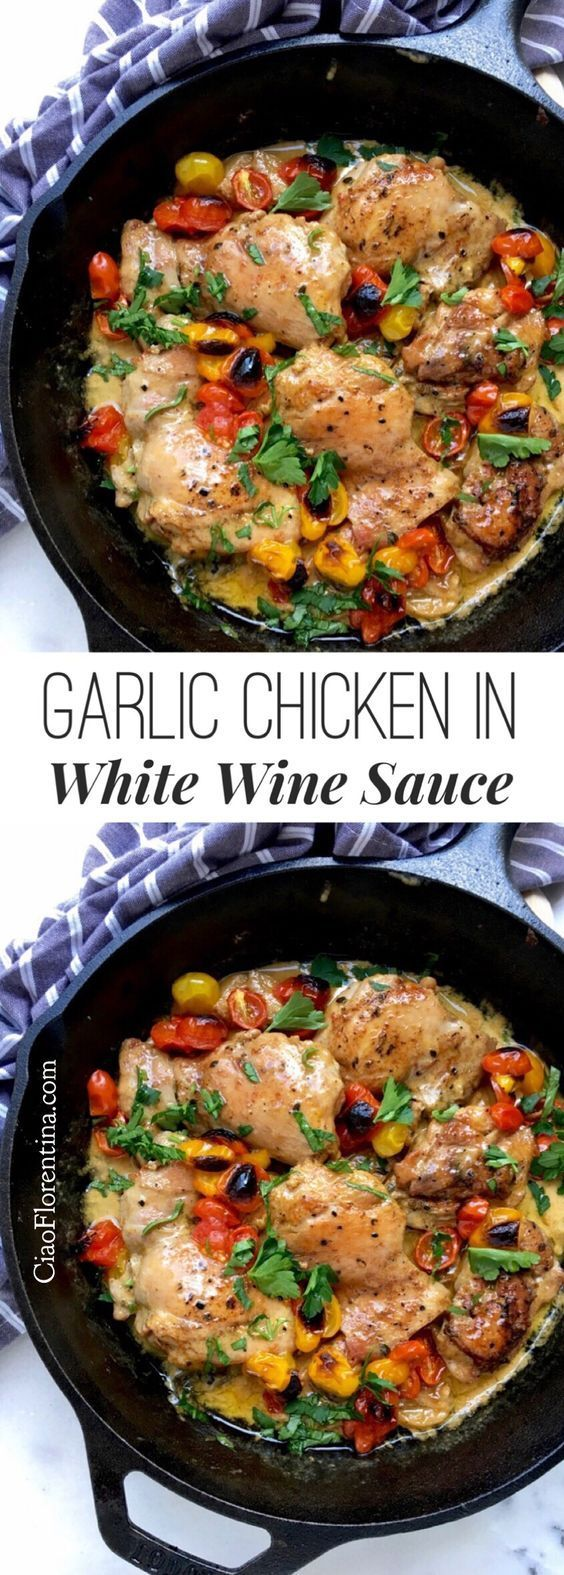 Garlic Chicken in White Wine Sauce Italian Style, with Thyme and Tomatoes ❤️  CiaoFlorentina.com @CiaoFlorentina